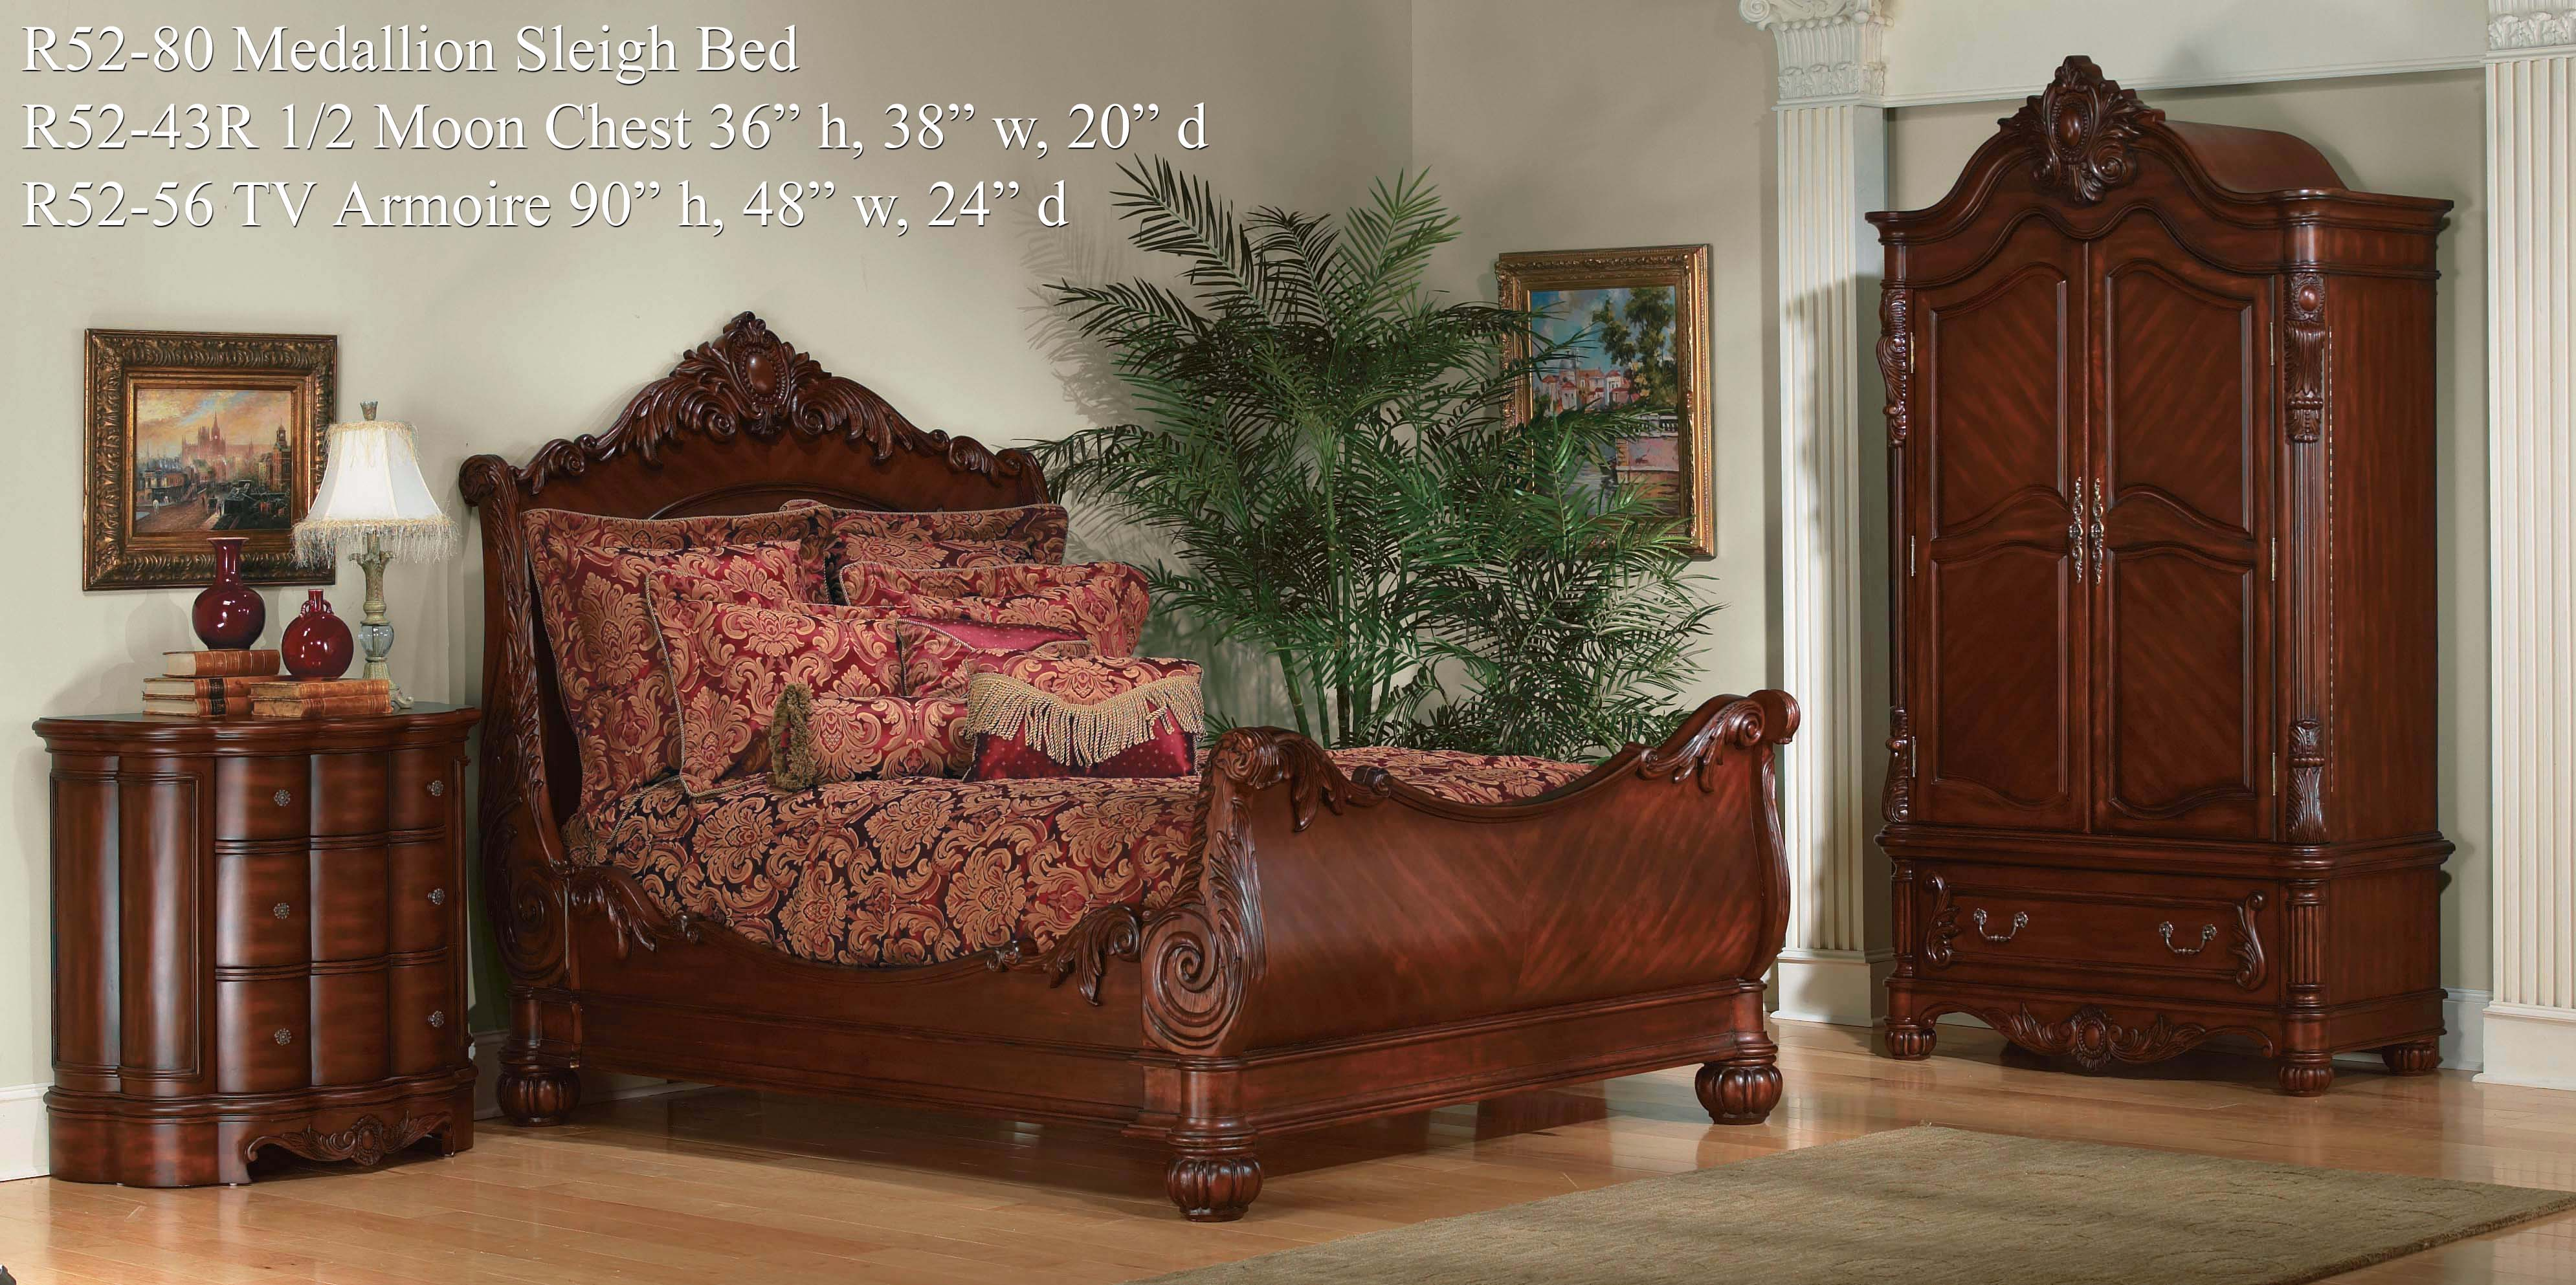 Deluxe headboars king sleigh bed with royal duvet cover and luxury sheets also unique area rug above laminate flooring ideas